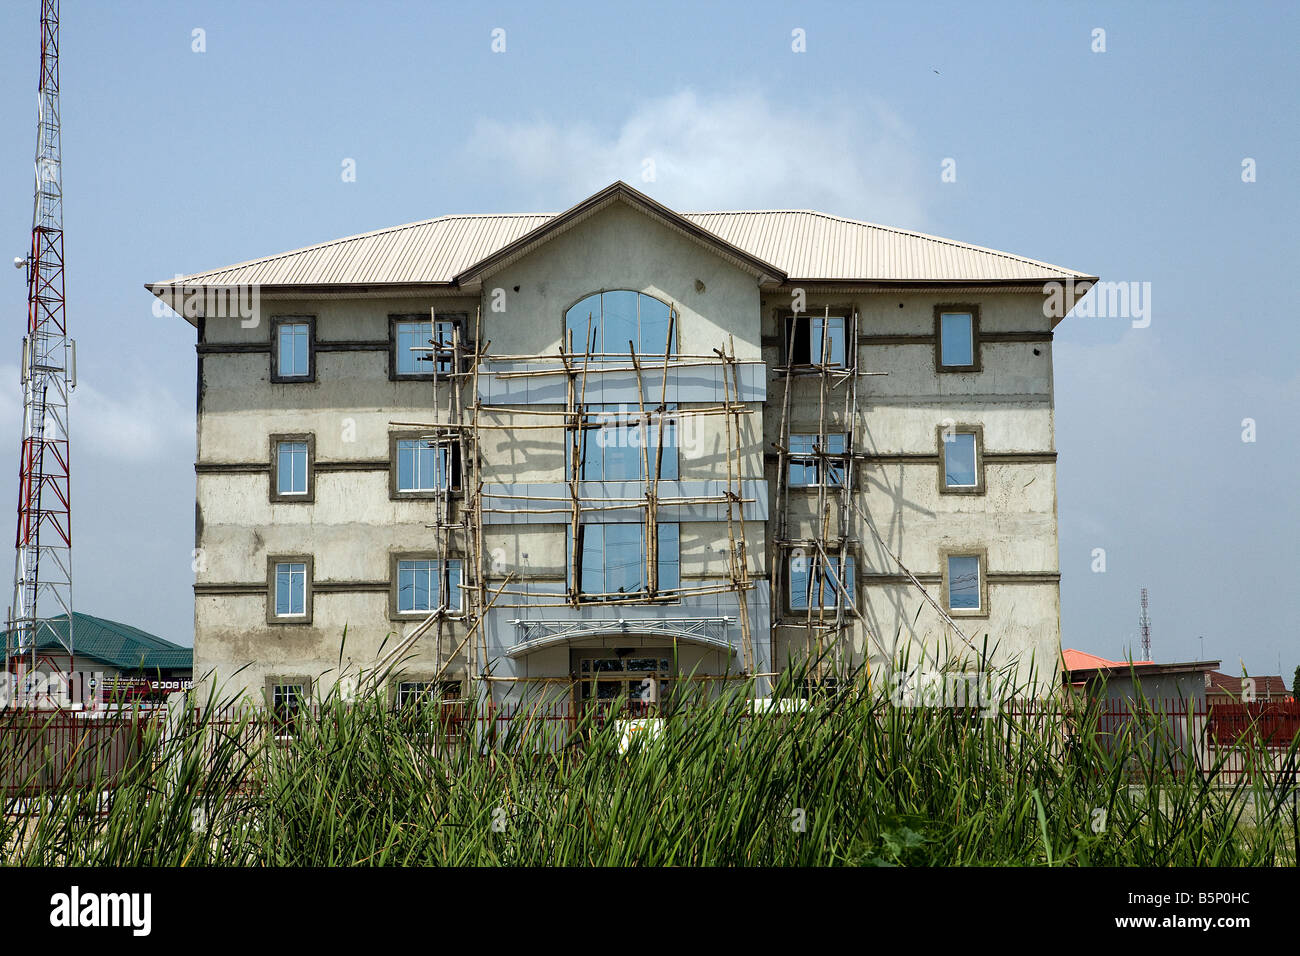 A new four-floor building is nearly completed and still has some of the bamboo scaffolding erected - Stock Image